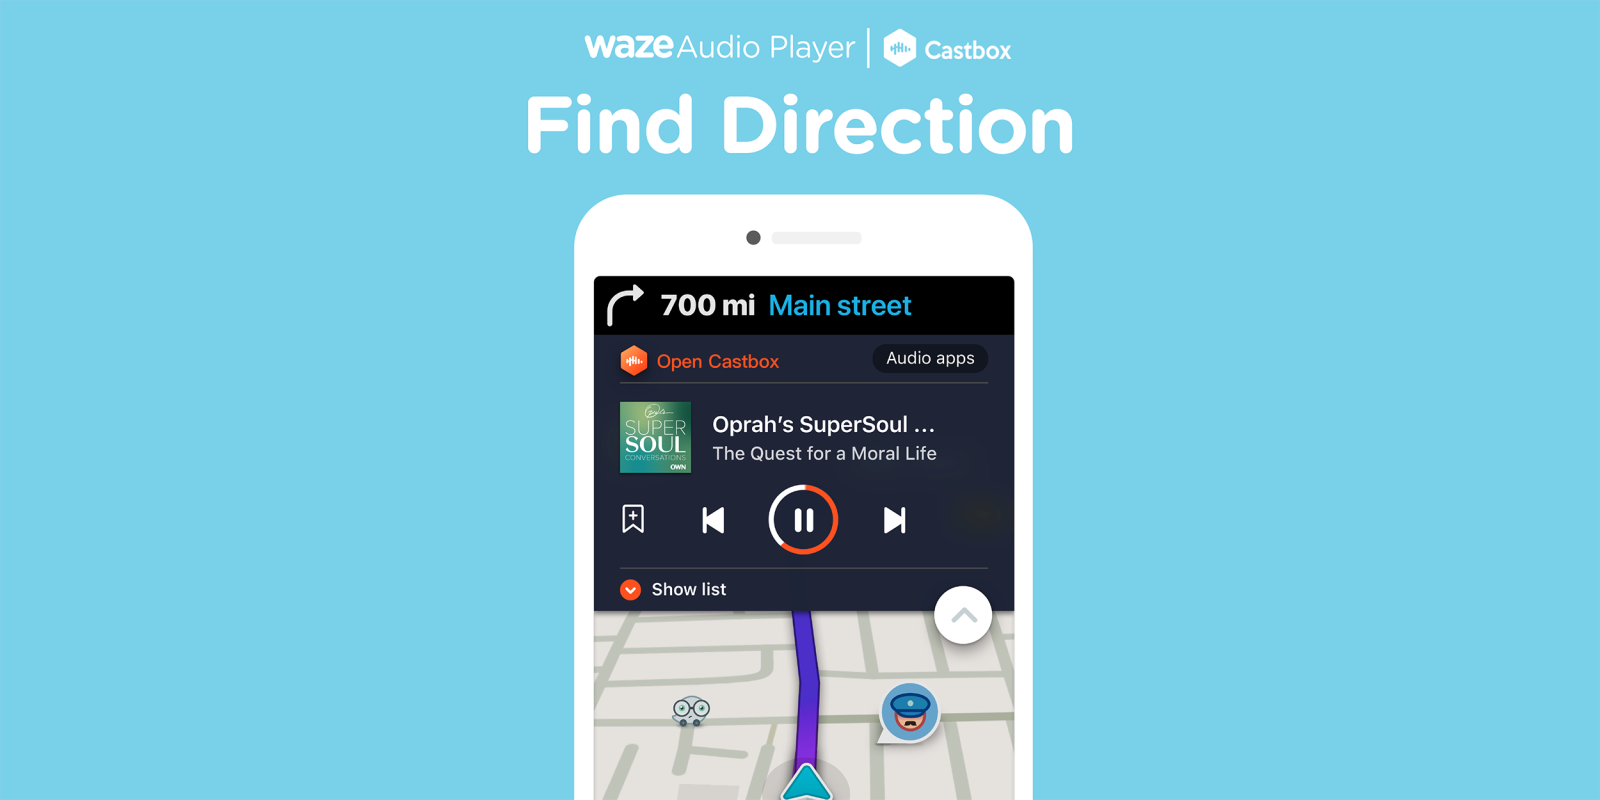 Waze adds support for Castbox podcast player on Android